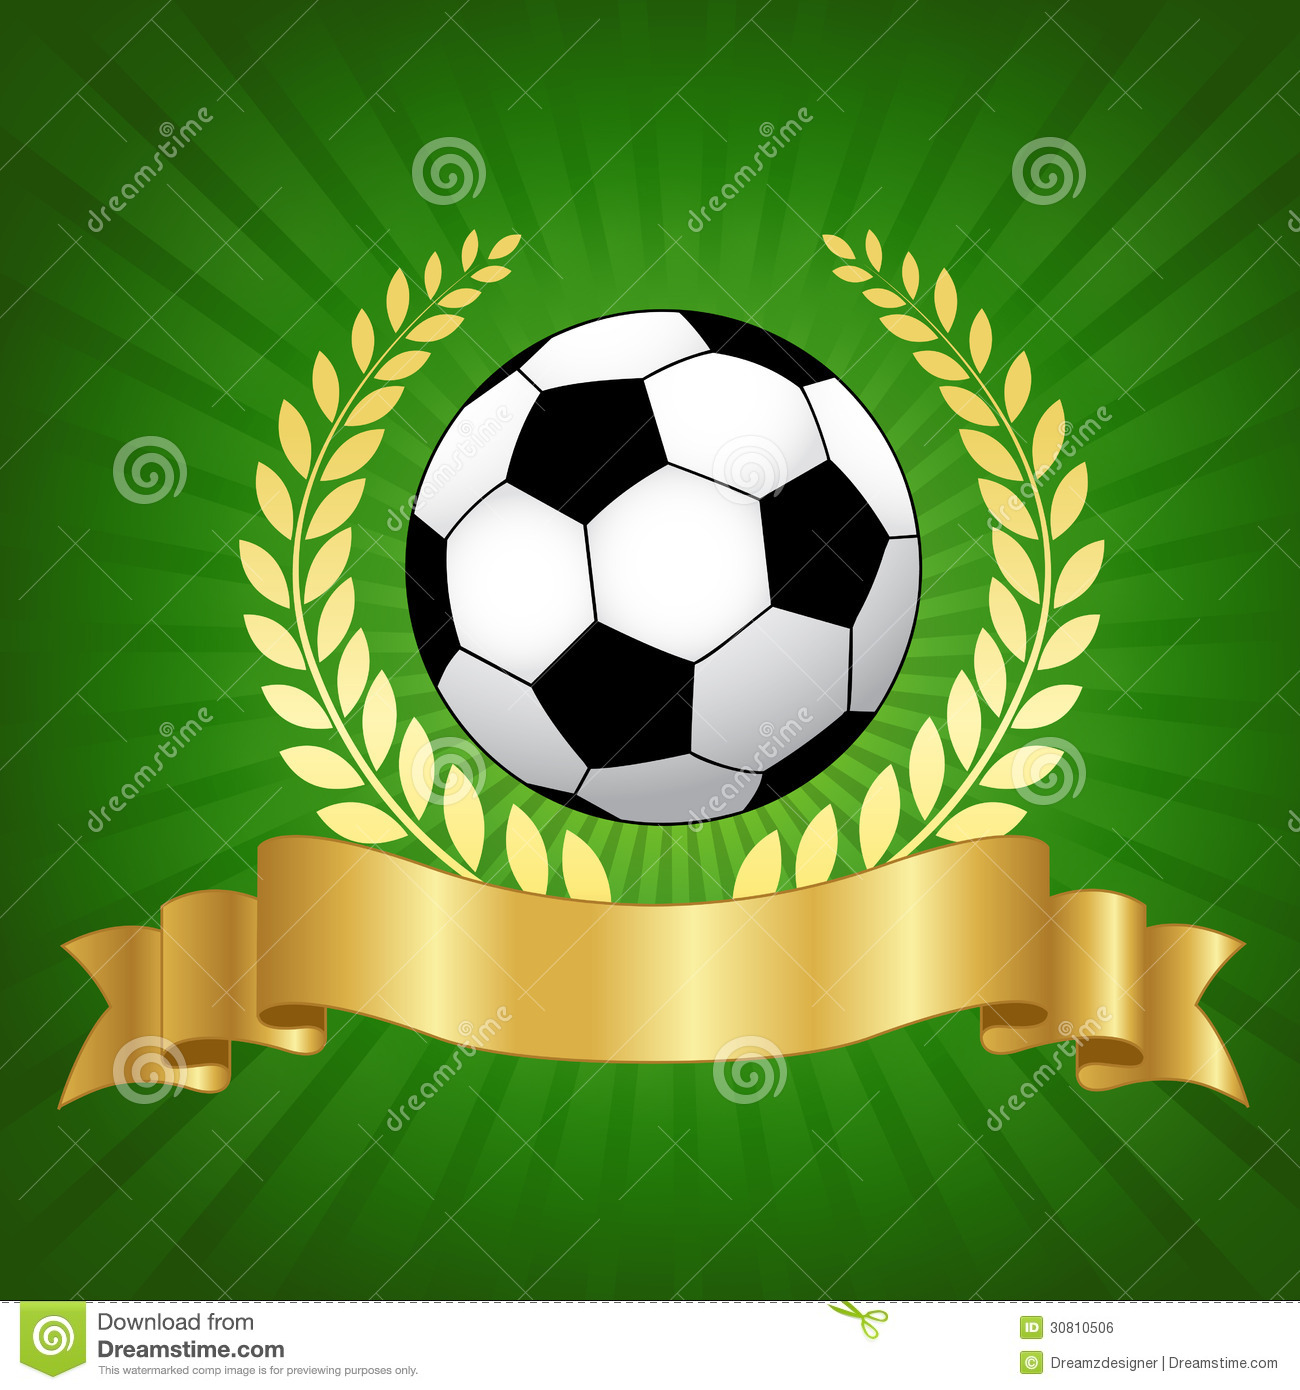 Soccer Championship Design With Football Stock Vector